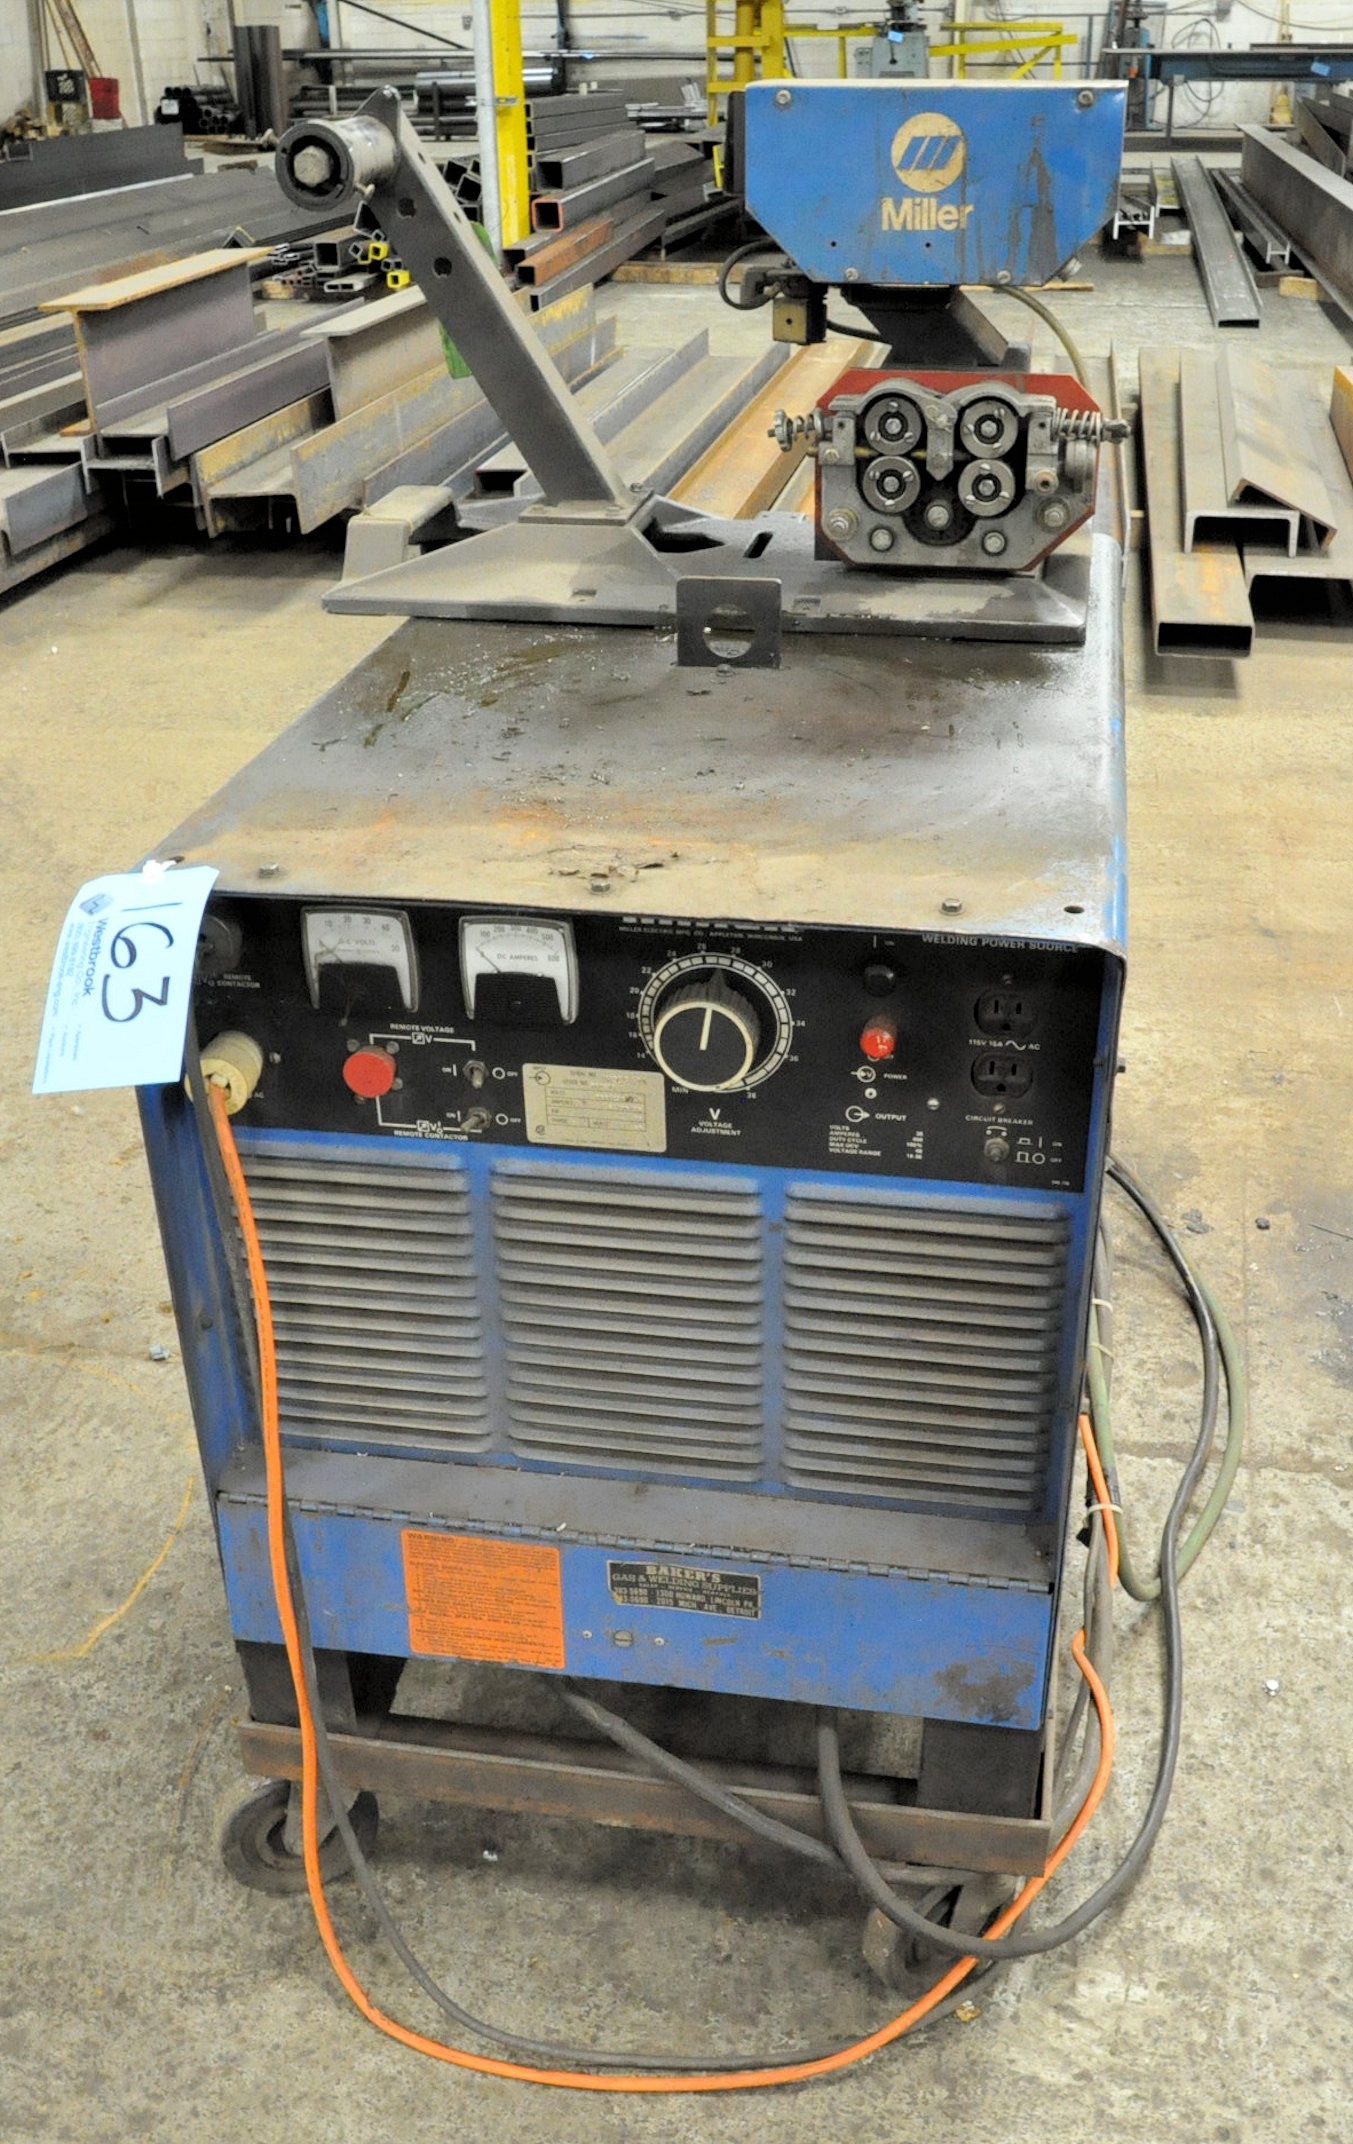 Miller Deltaweld 450, 450-Amp DC Arc Welding Power Source with Millermatic S-45E Wire Feeder